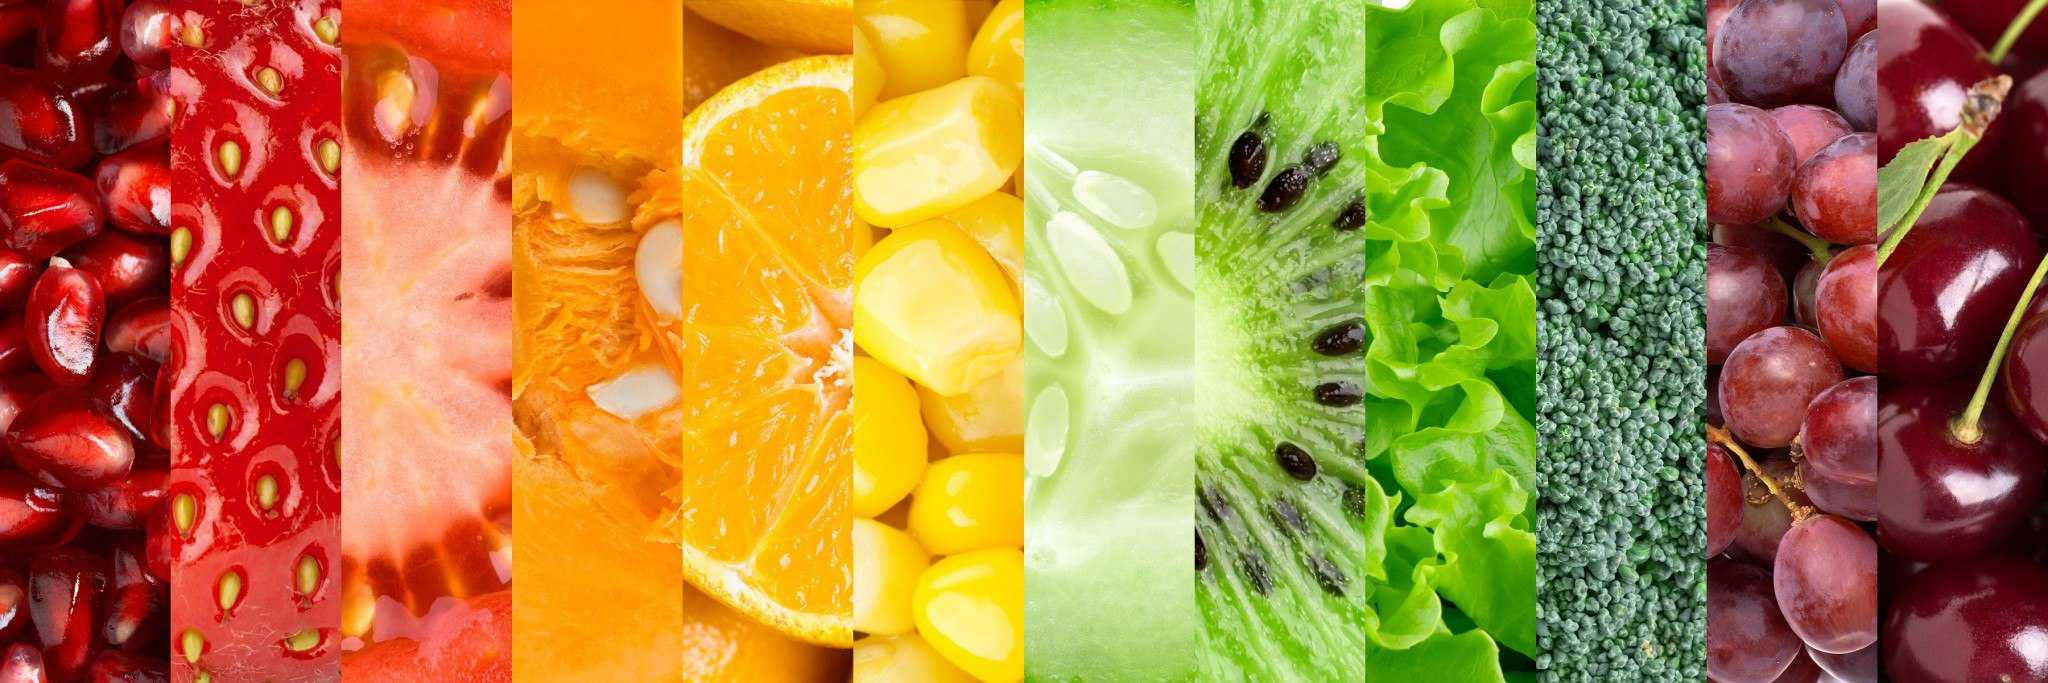 Multiple fruit and vegetable cross-sections in a stylish image.